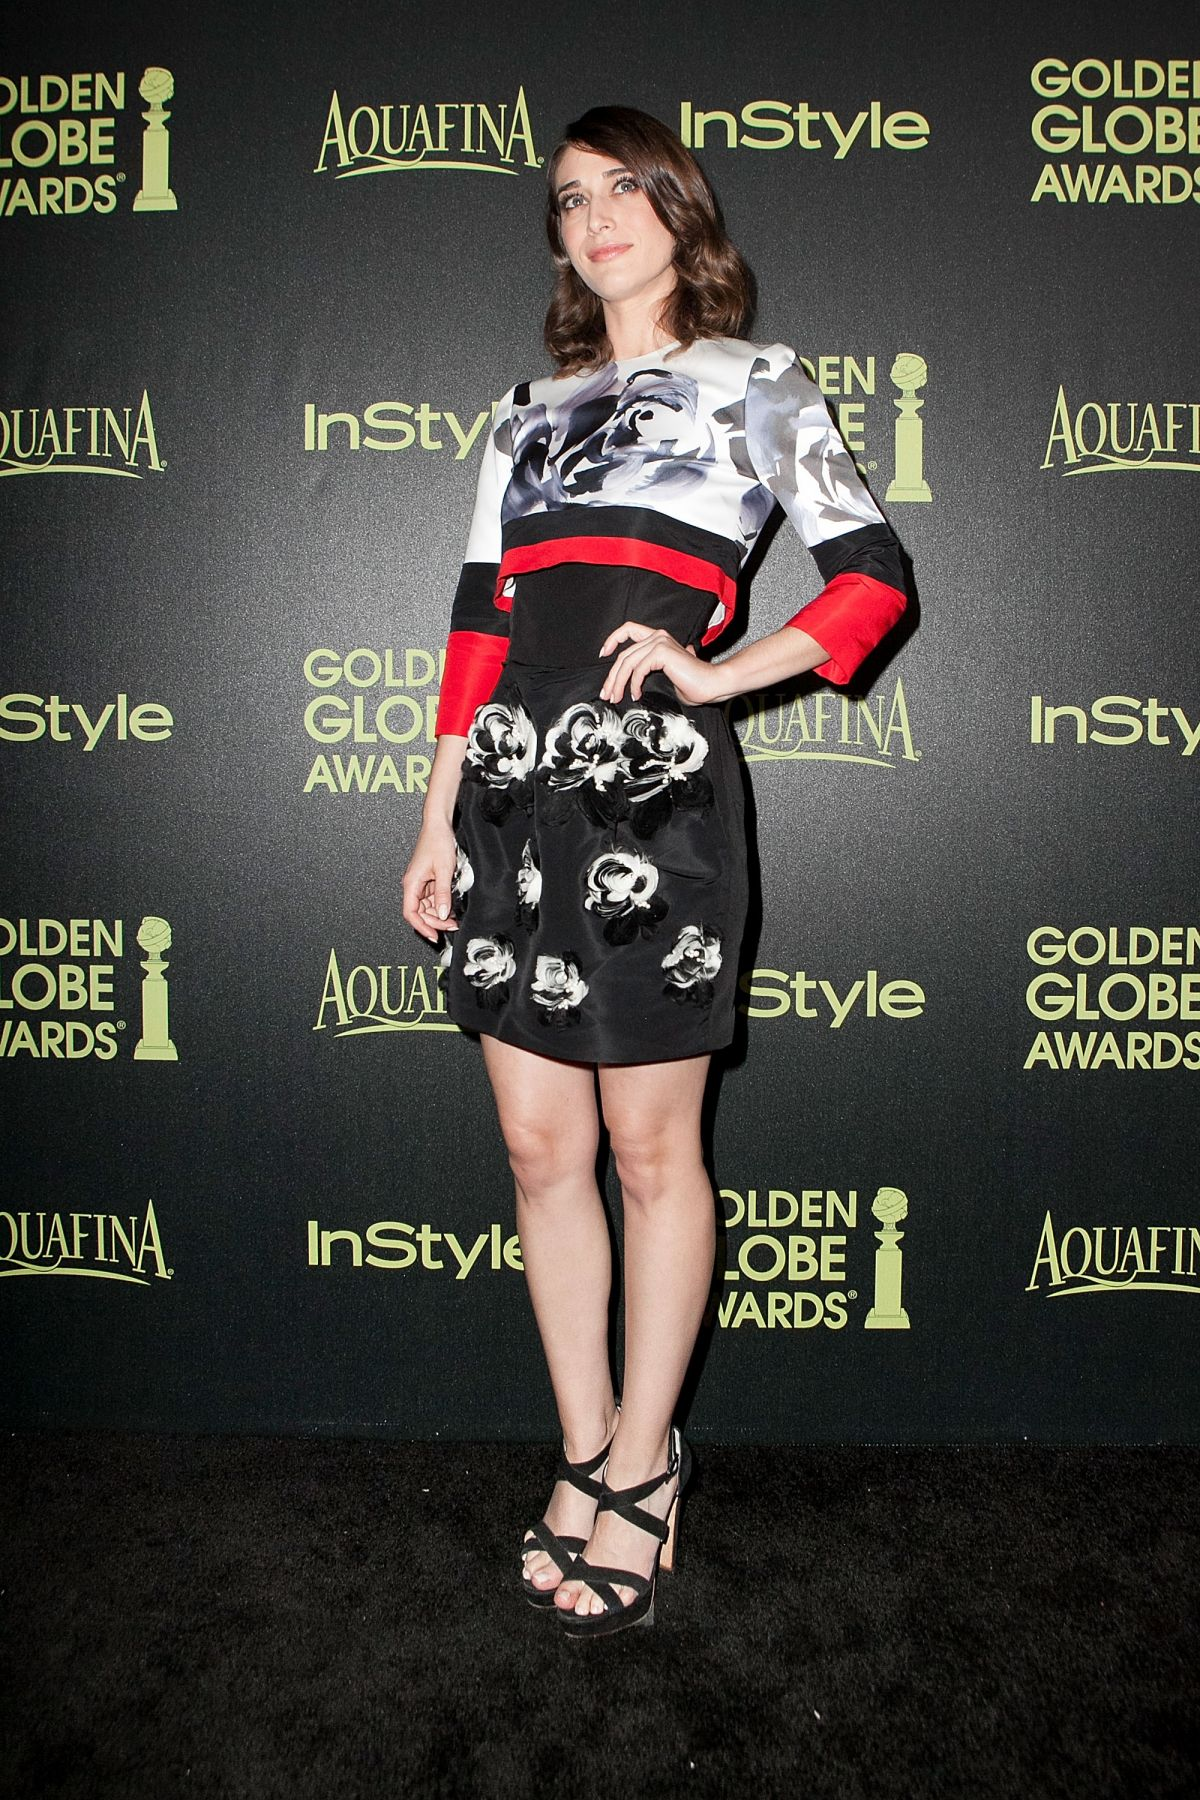 lizzy-caplan-appear-at-hfpa-instyle-celebrate-the-2015-golden-globe-award-season-in-west-hollywood_5